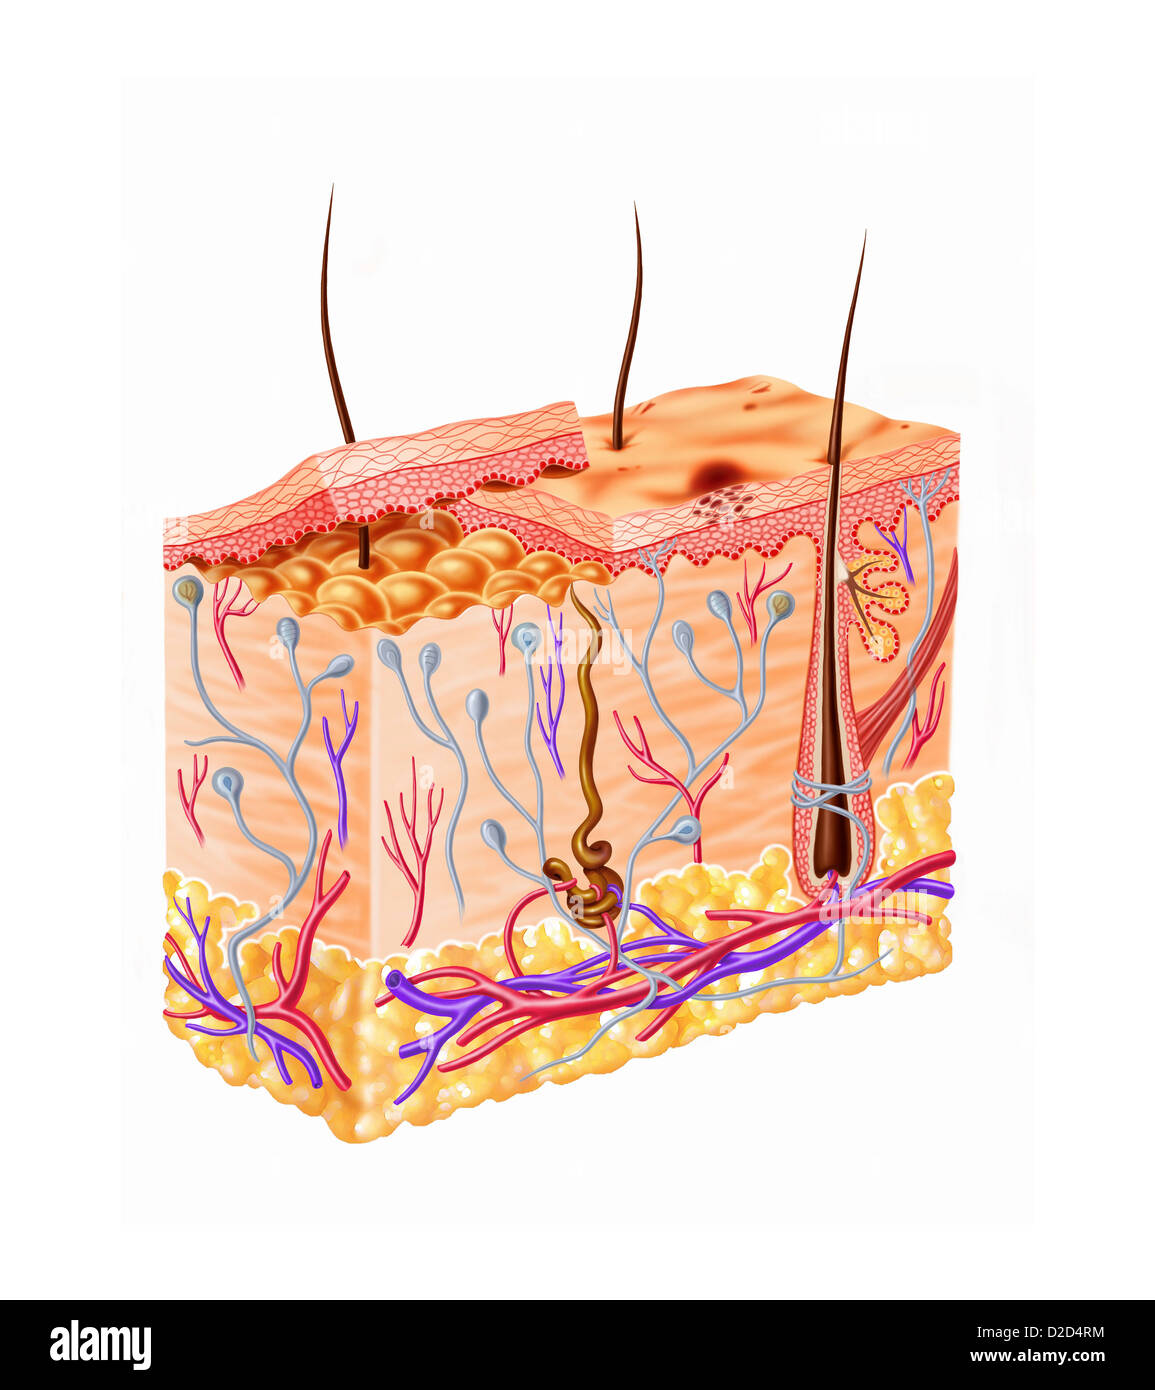 Human Hair Follicle Stock Photos & Human Hair Follicle Stock Images ...